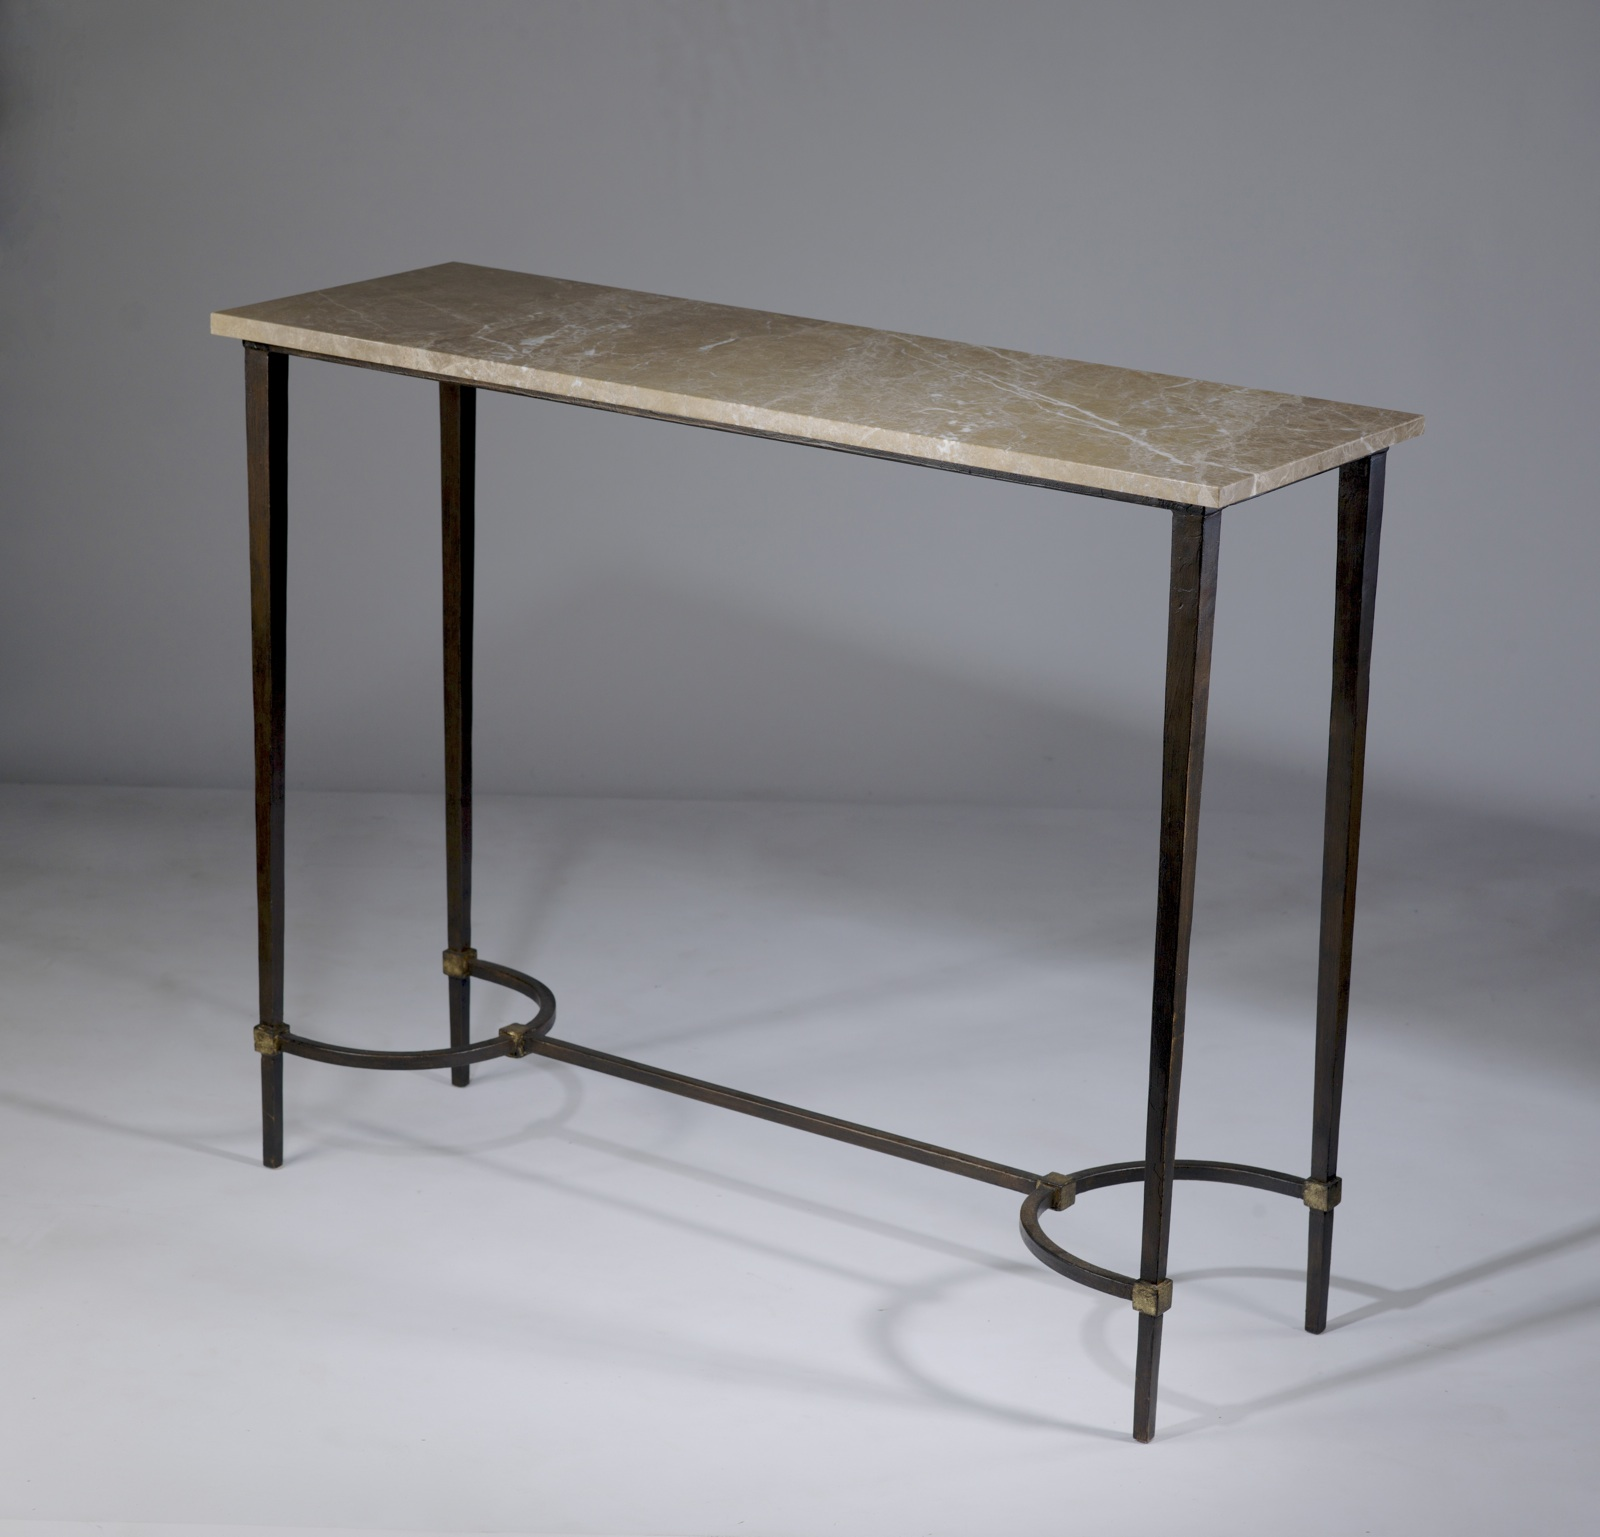 Wrought Iron Tapered Leg Side Table With Marble Top In Brown Bronze Gold Leaf Highlight Finish T3468 Tyson London Decorative Lighting And Furniture